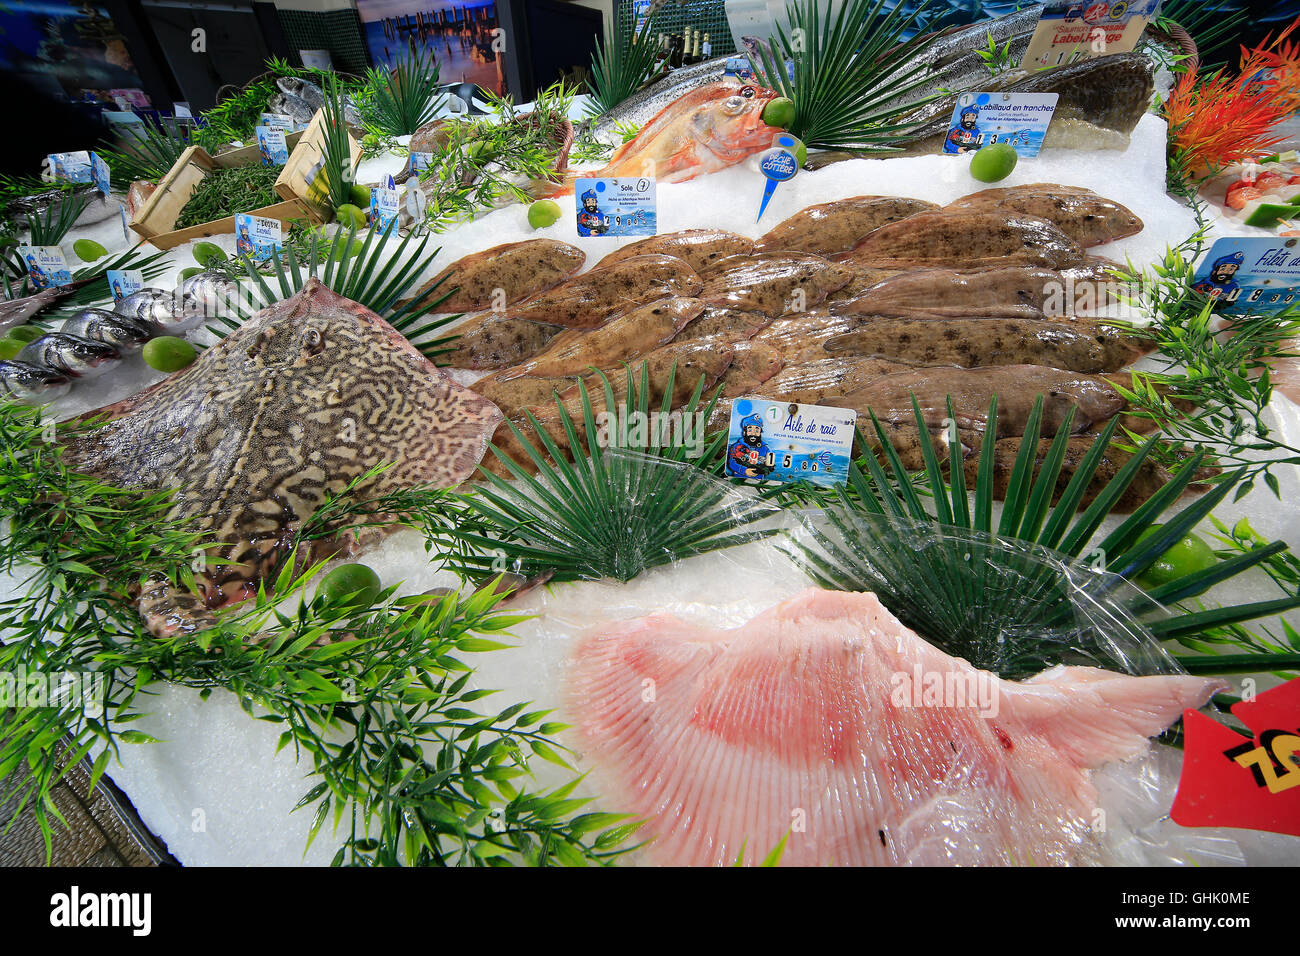 French Fish Market Stock Photos & French Fish Market Stock Images - Alamy